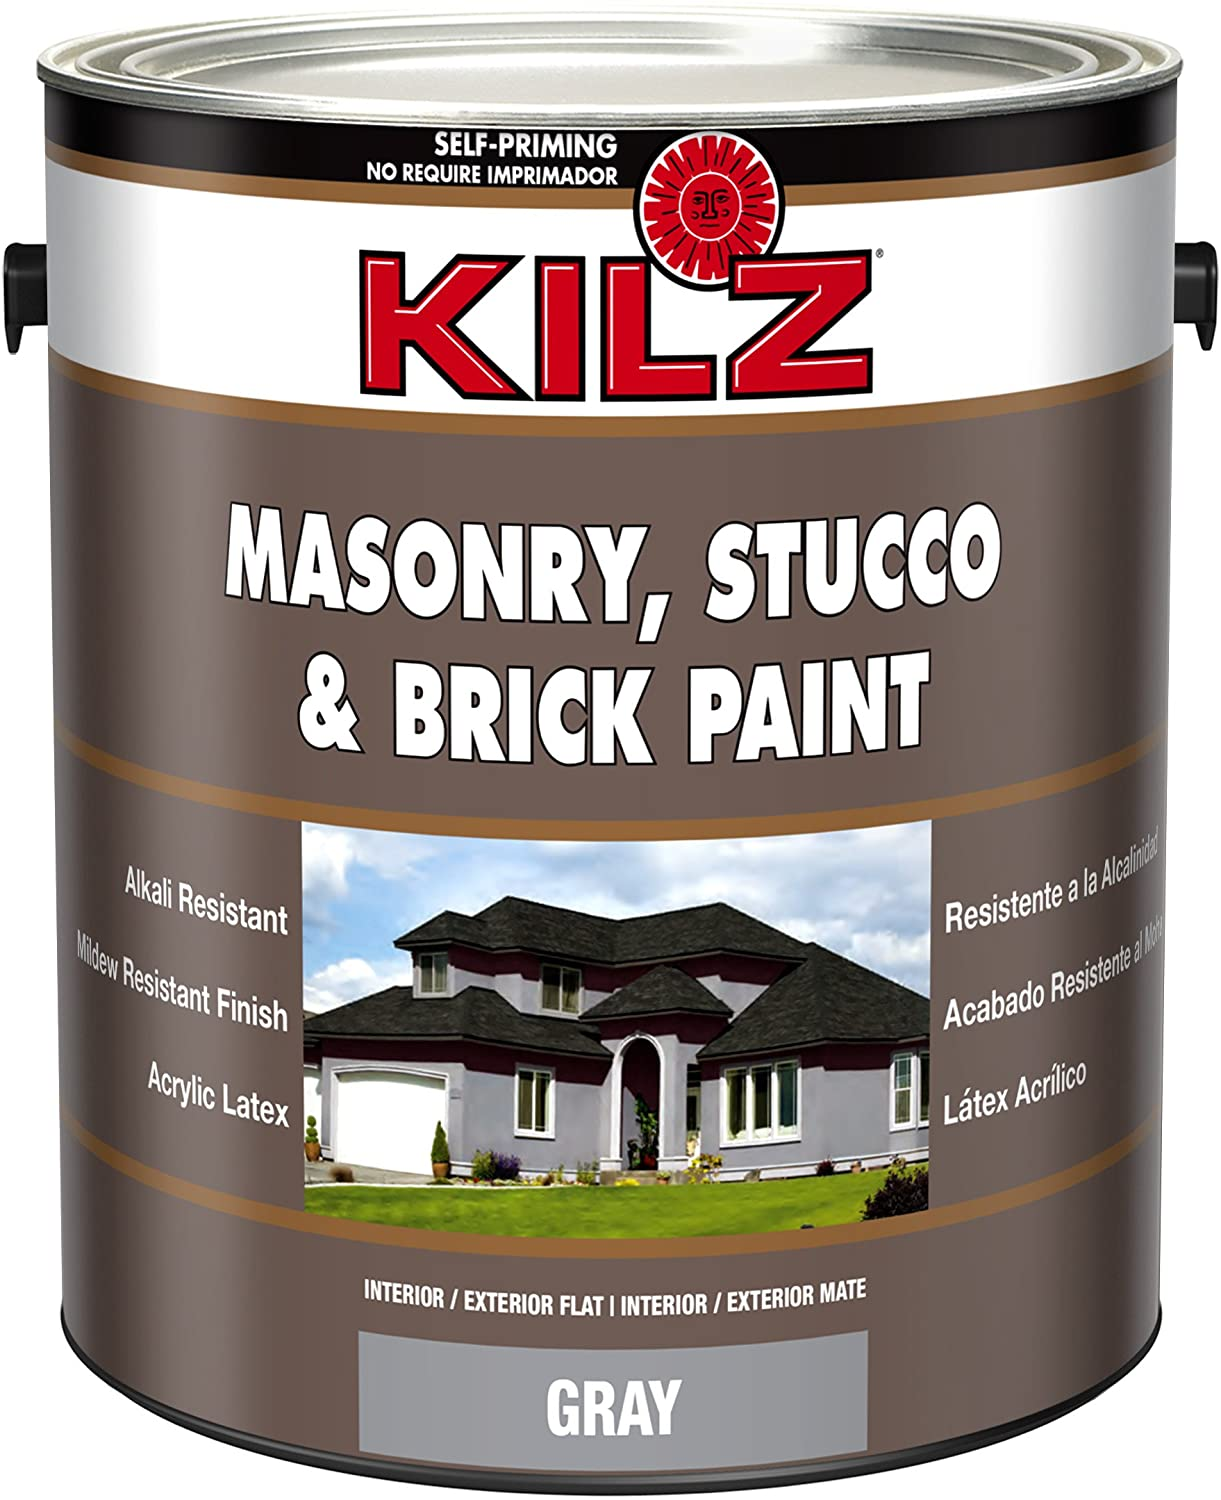 KILZ Interior/Exterior Self-Priming Masonry, Stucco & Brick Paint review